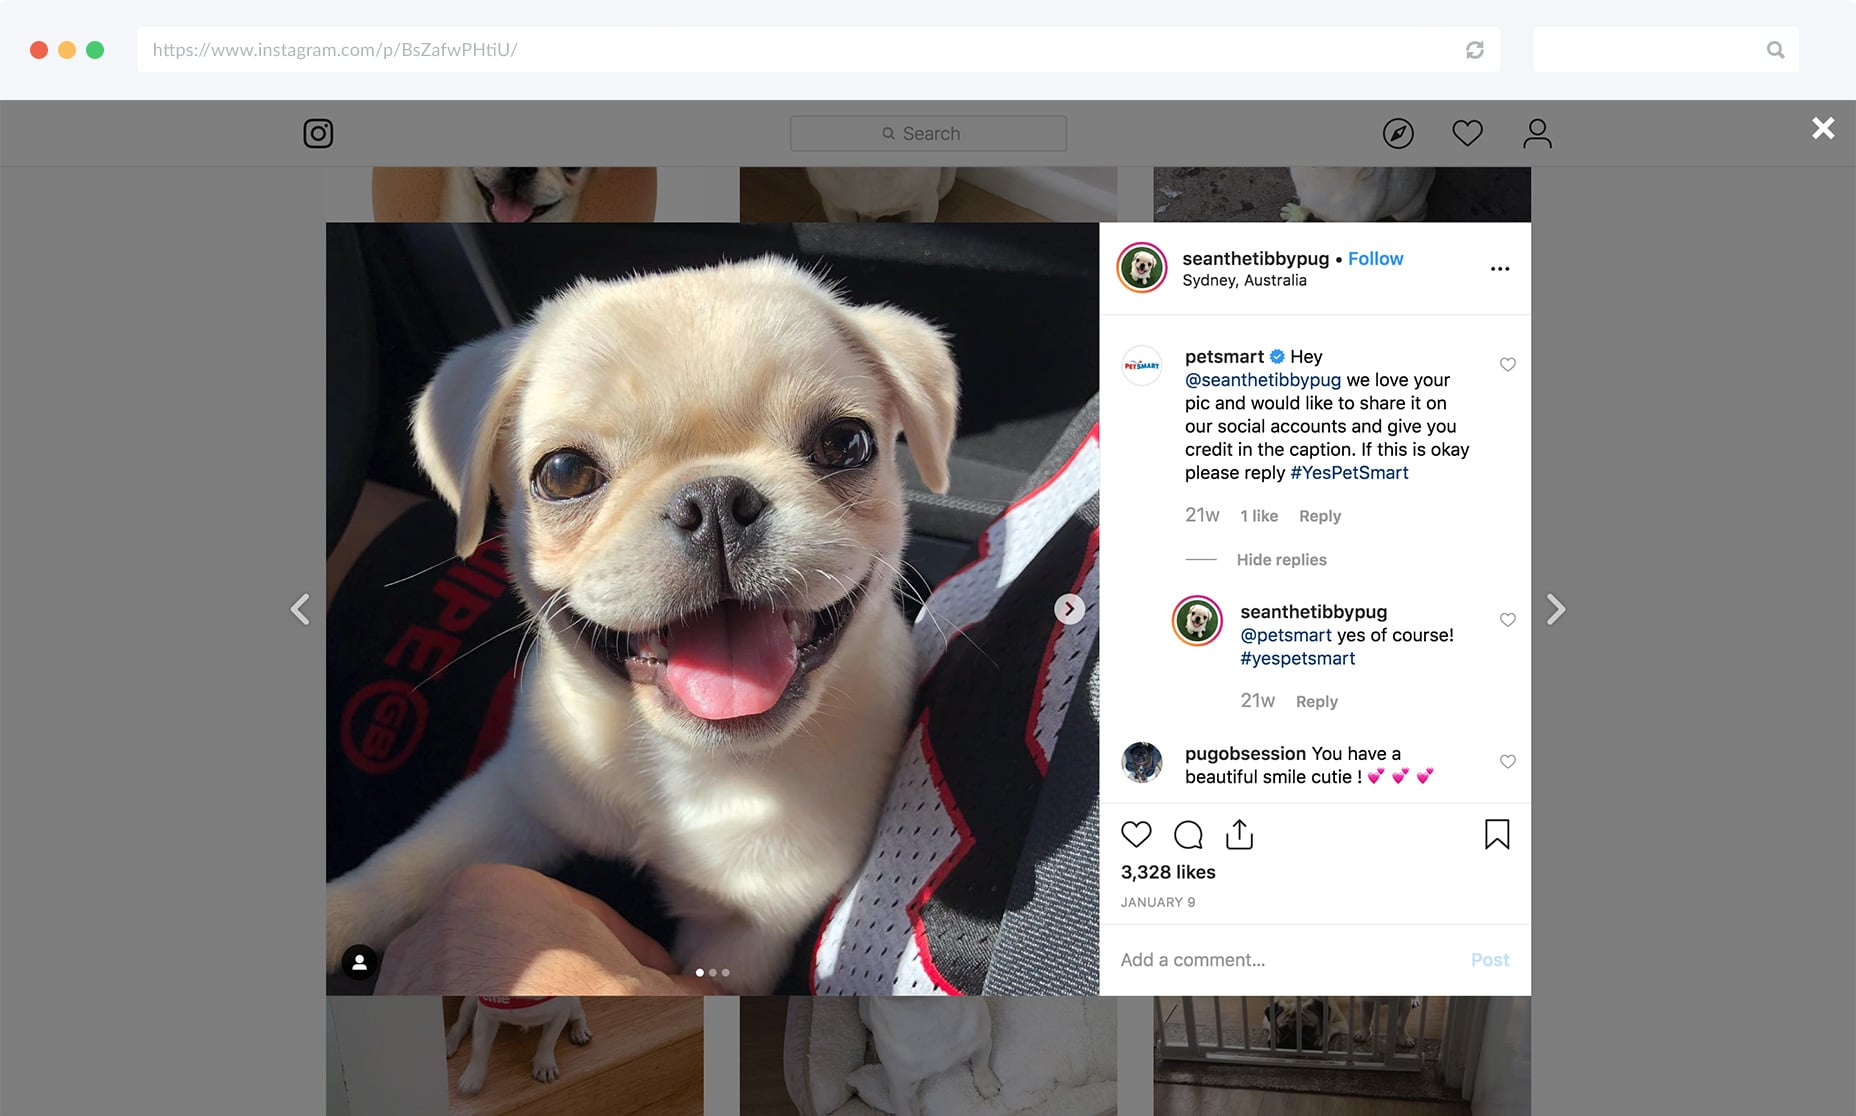 PetSmart uses hashtags to get permission to use UGC